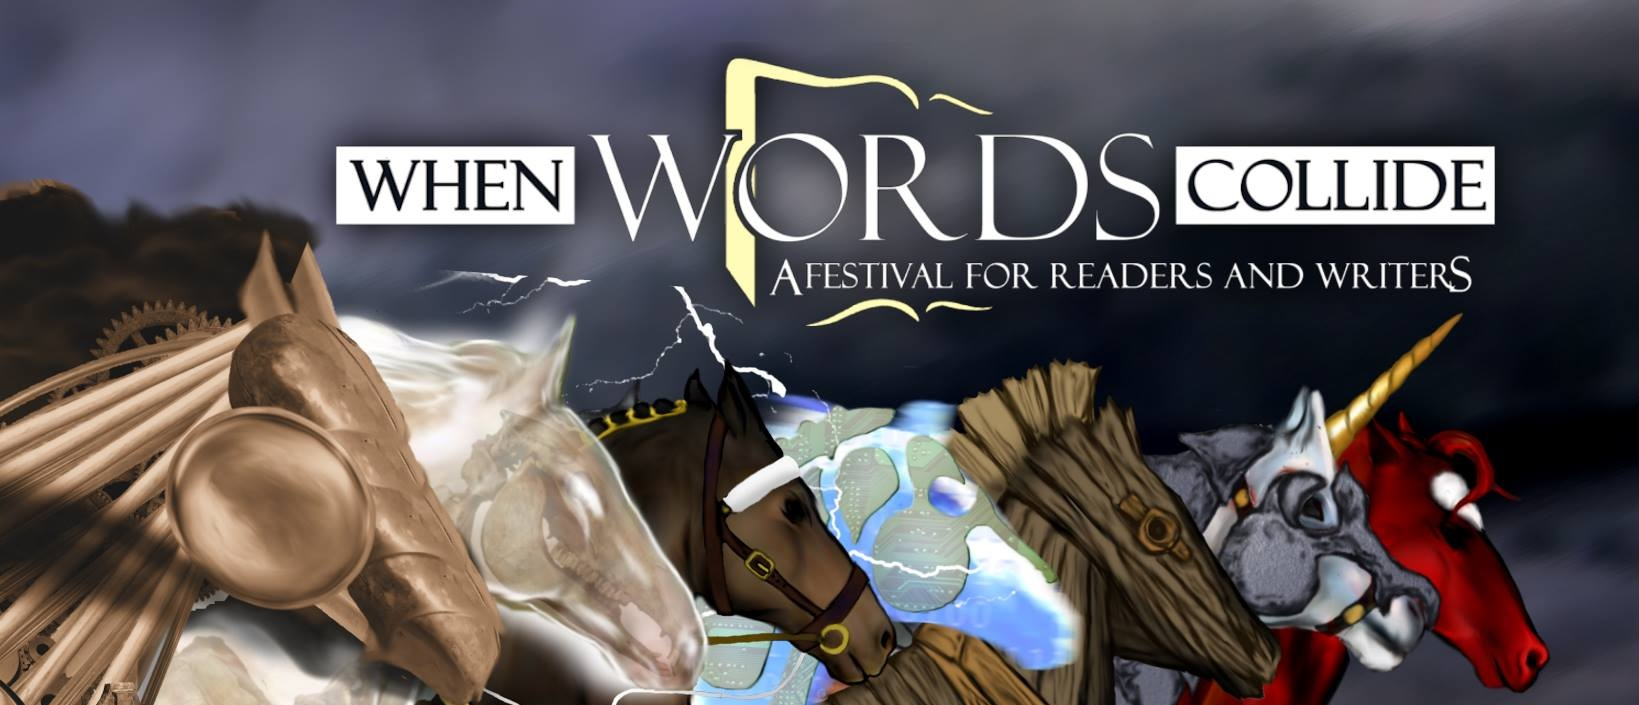 When Words Collide readers/writers conference.